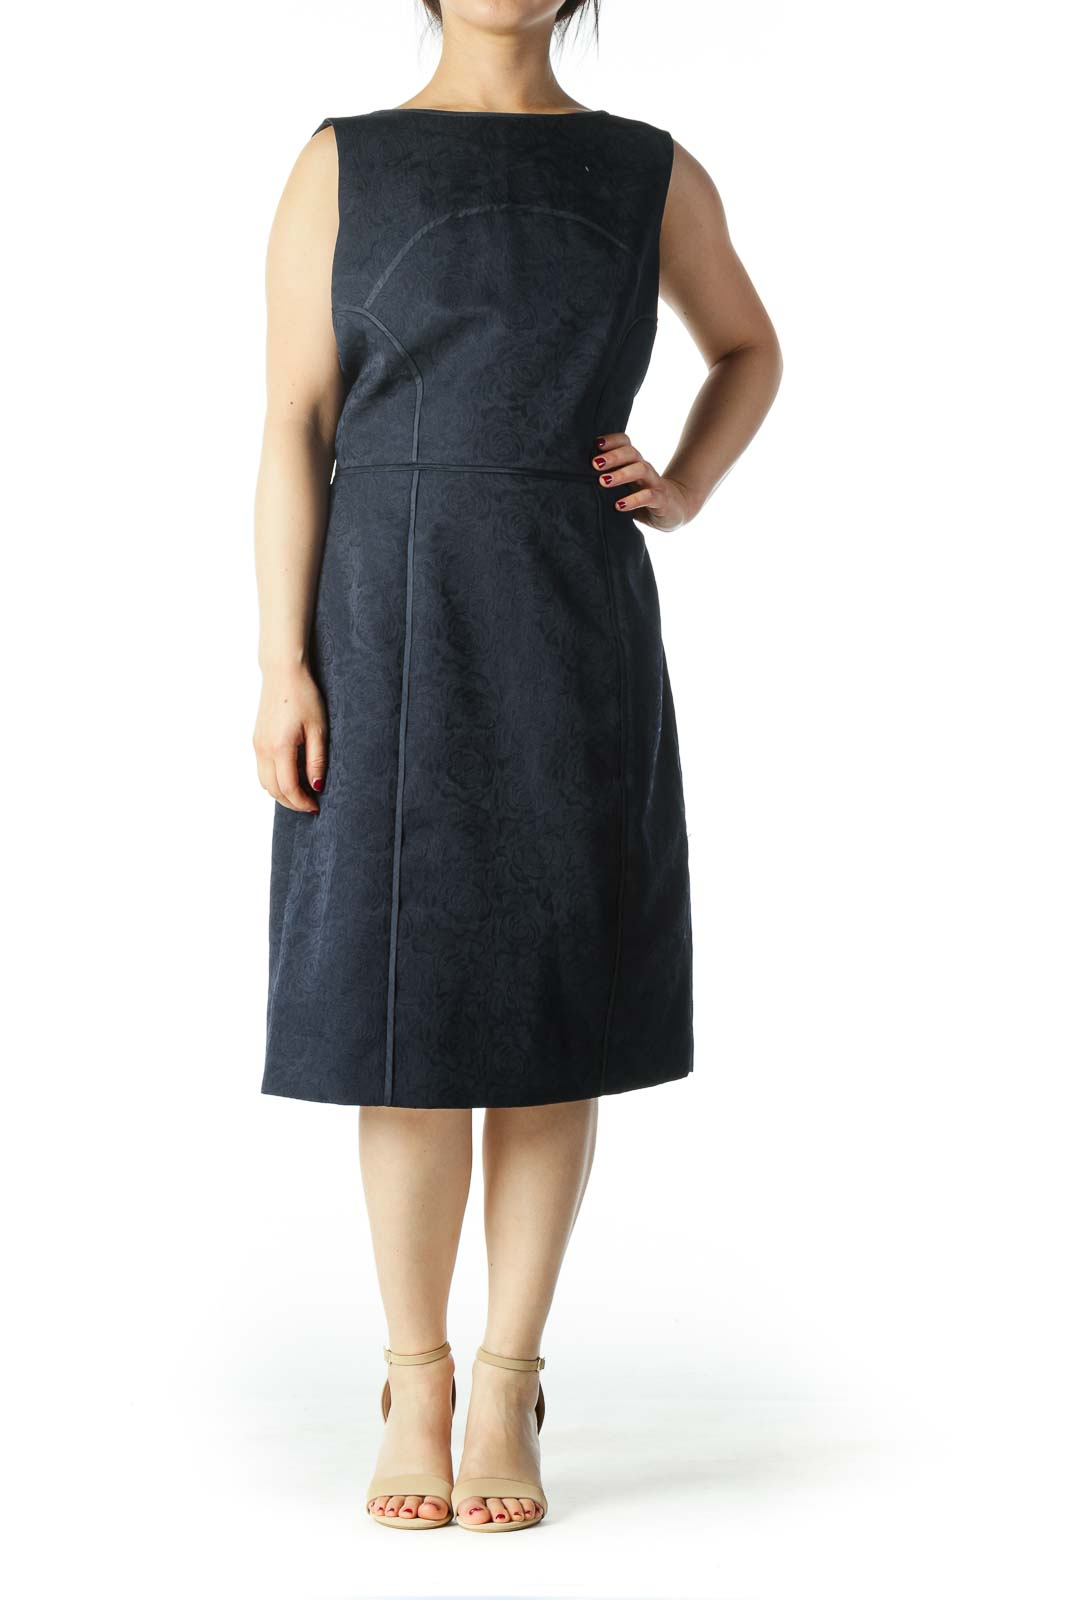 Navy Blue Textured Knee Length Work Dress